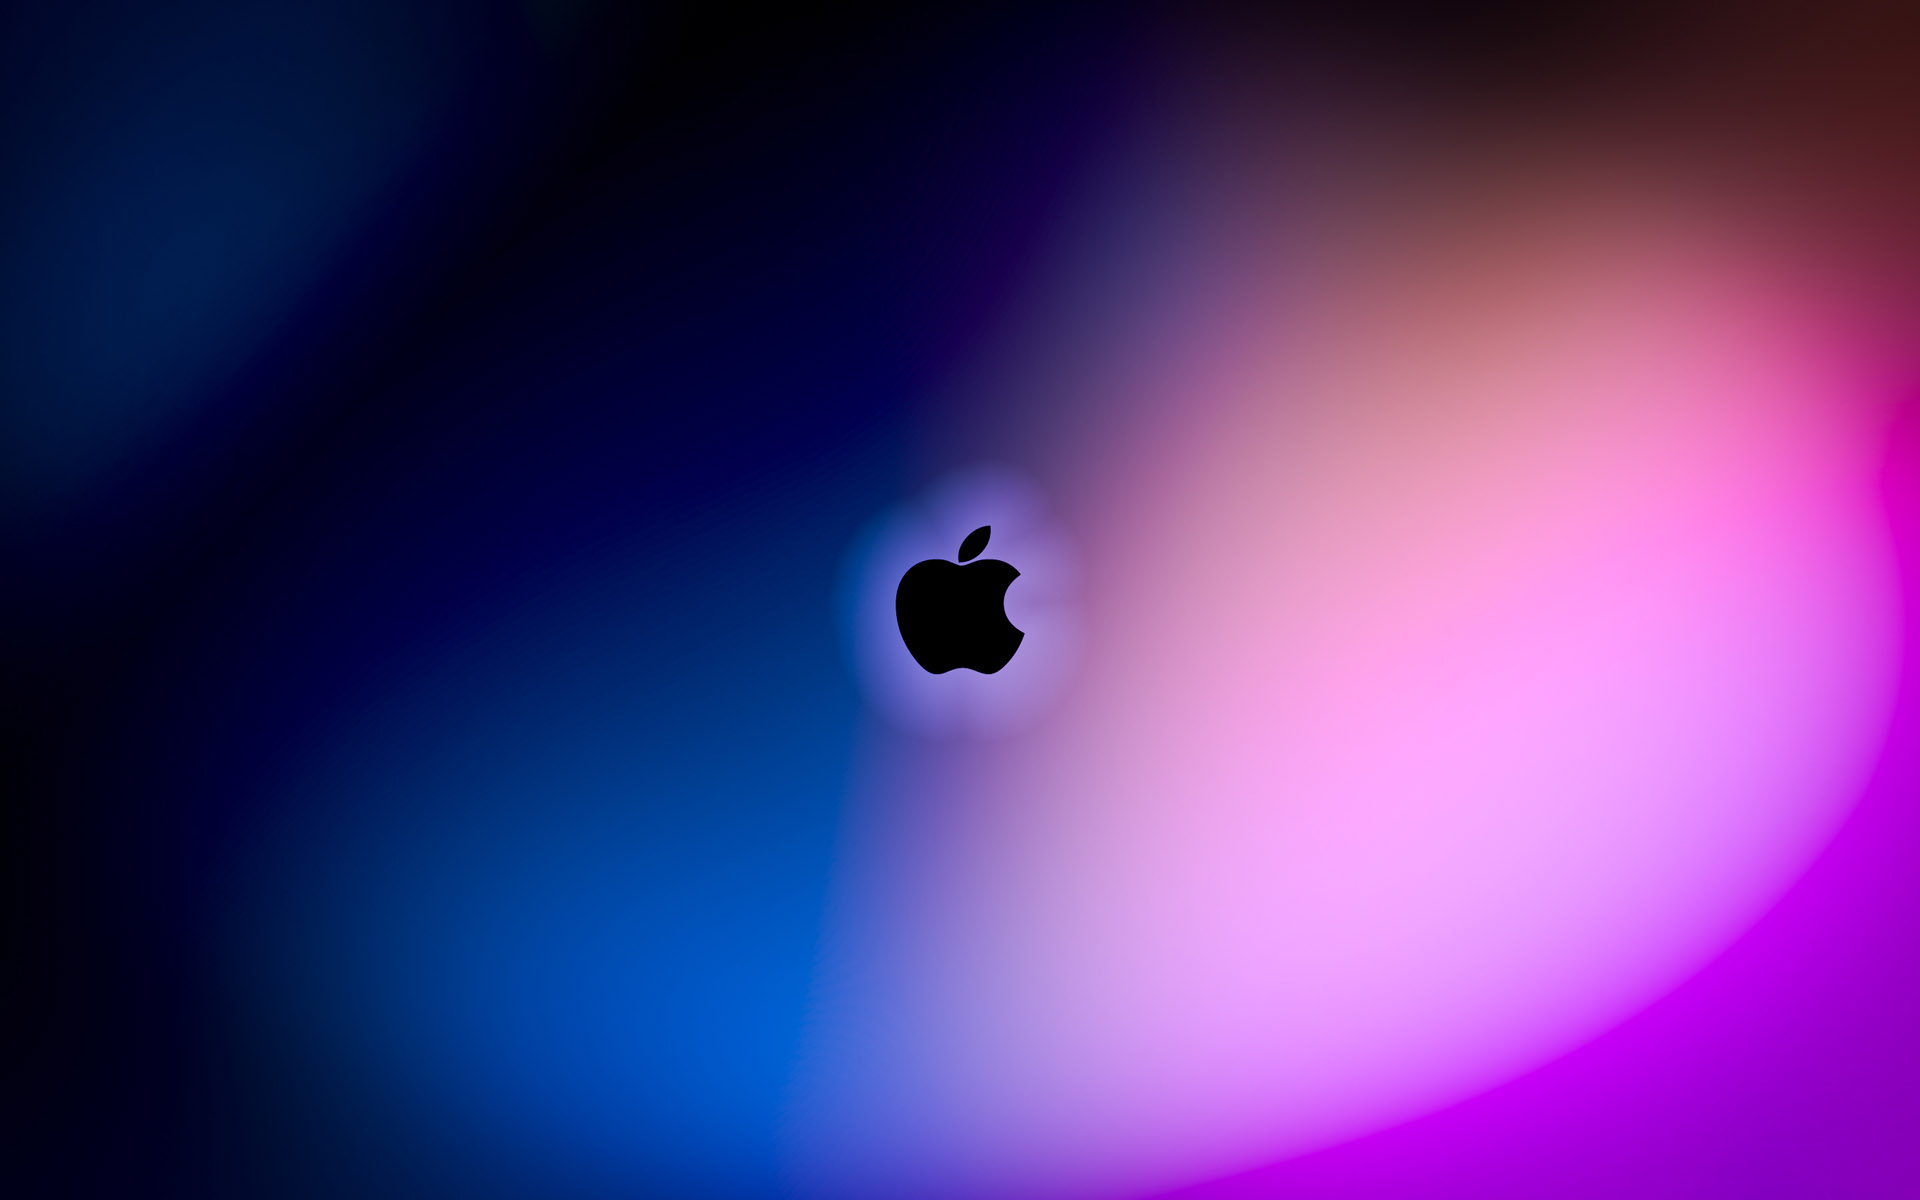 Apple wallpaper high definition 21968